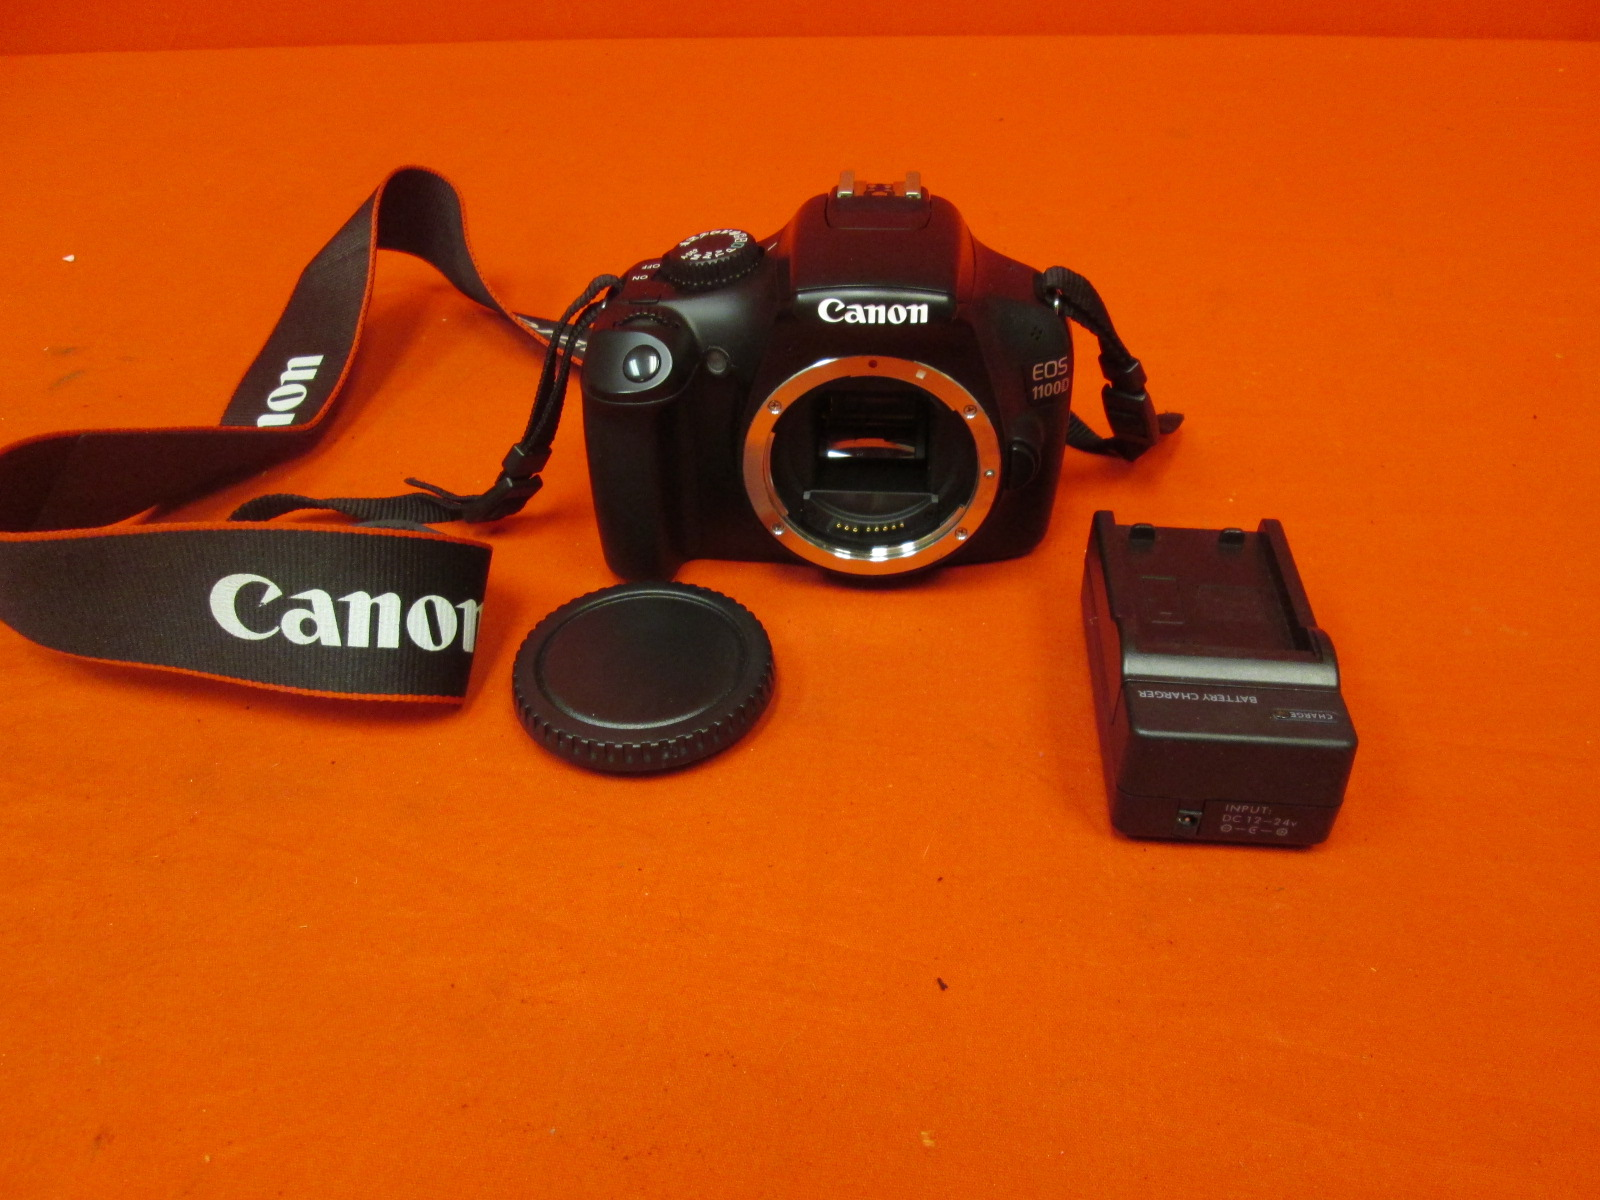 Canon EOS 1100D Grey Digital SLR Camera W/ Ef-S 18-55MM F/3.5-5.6 Is